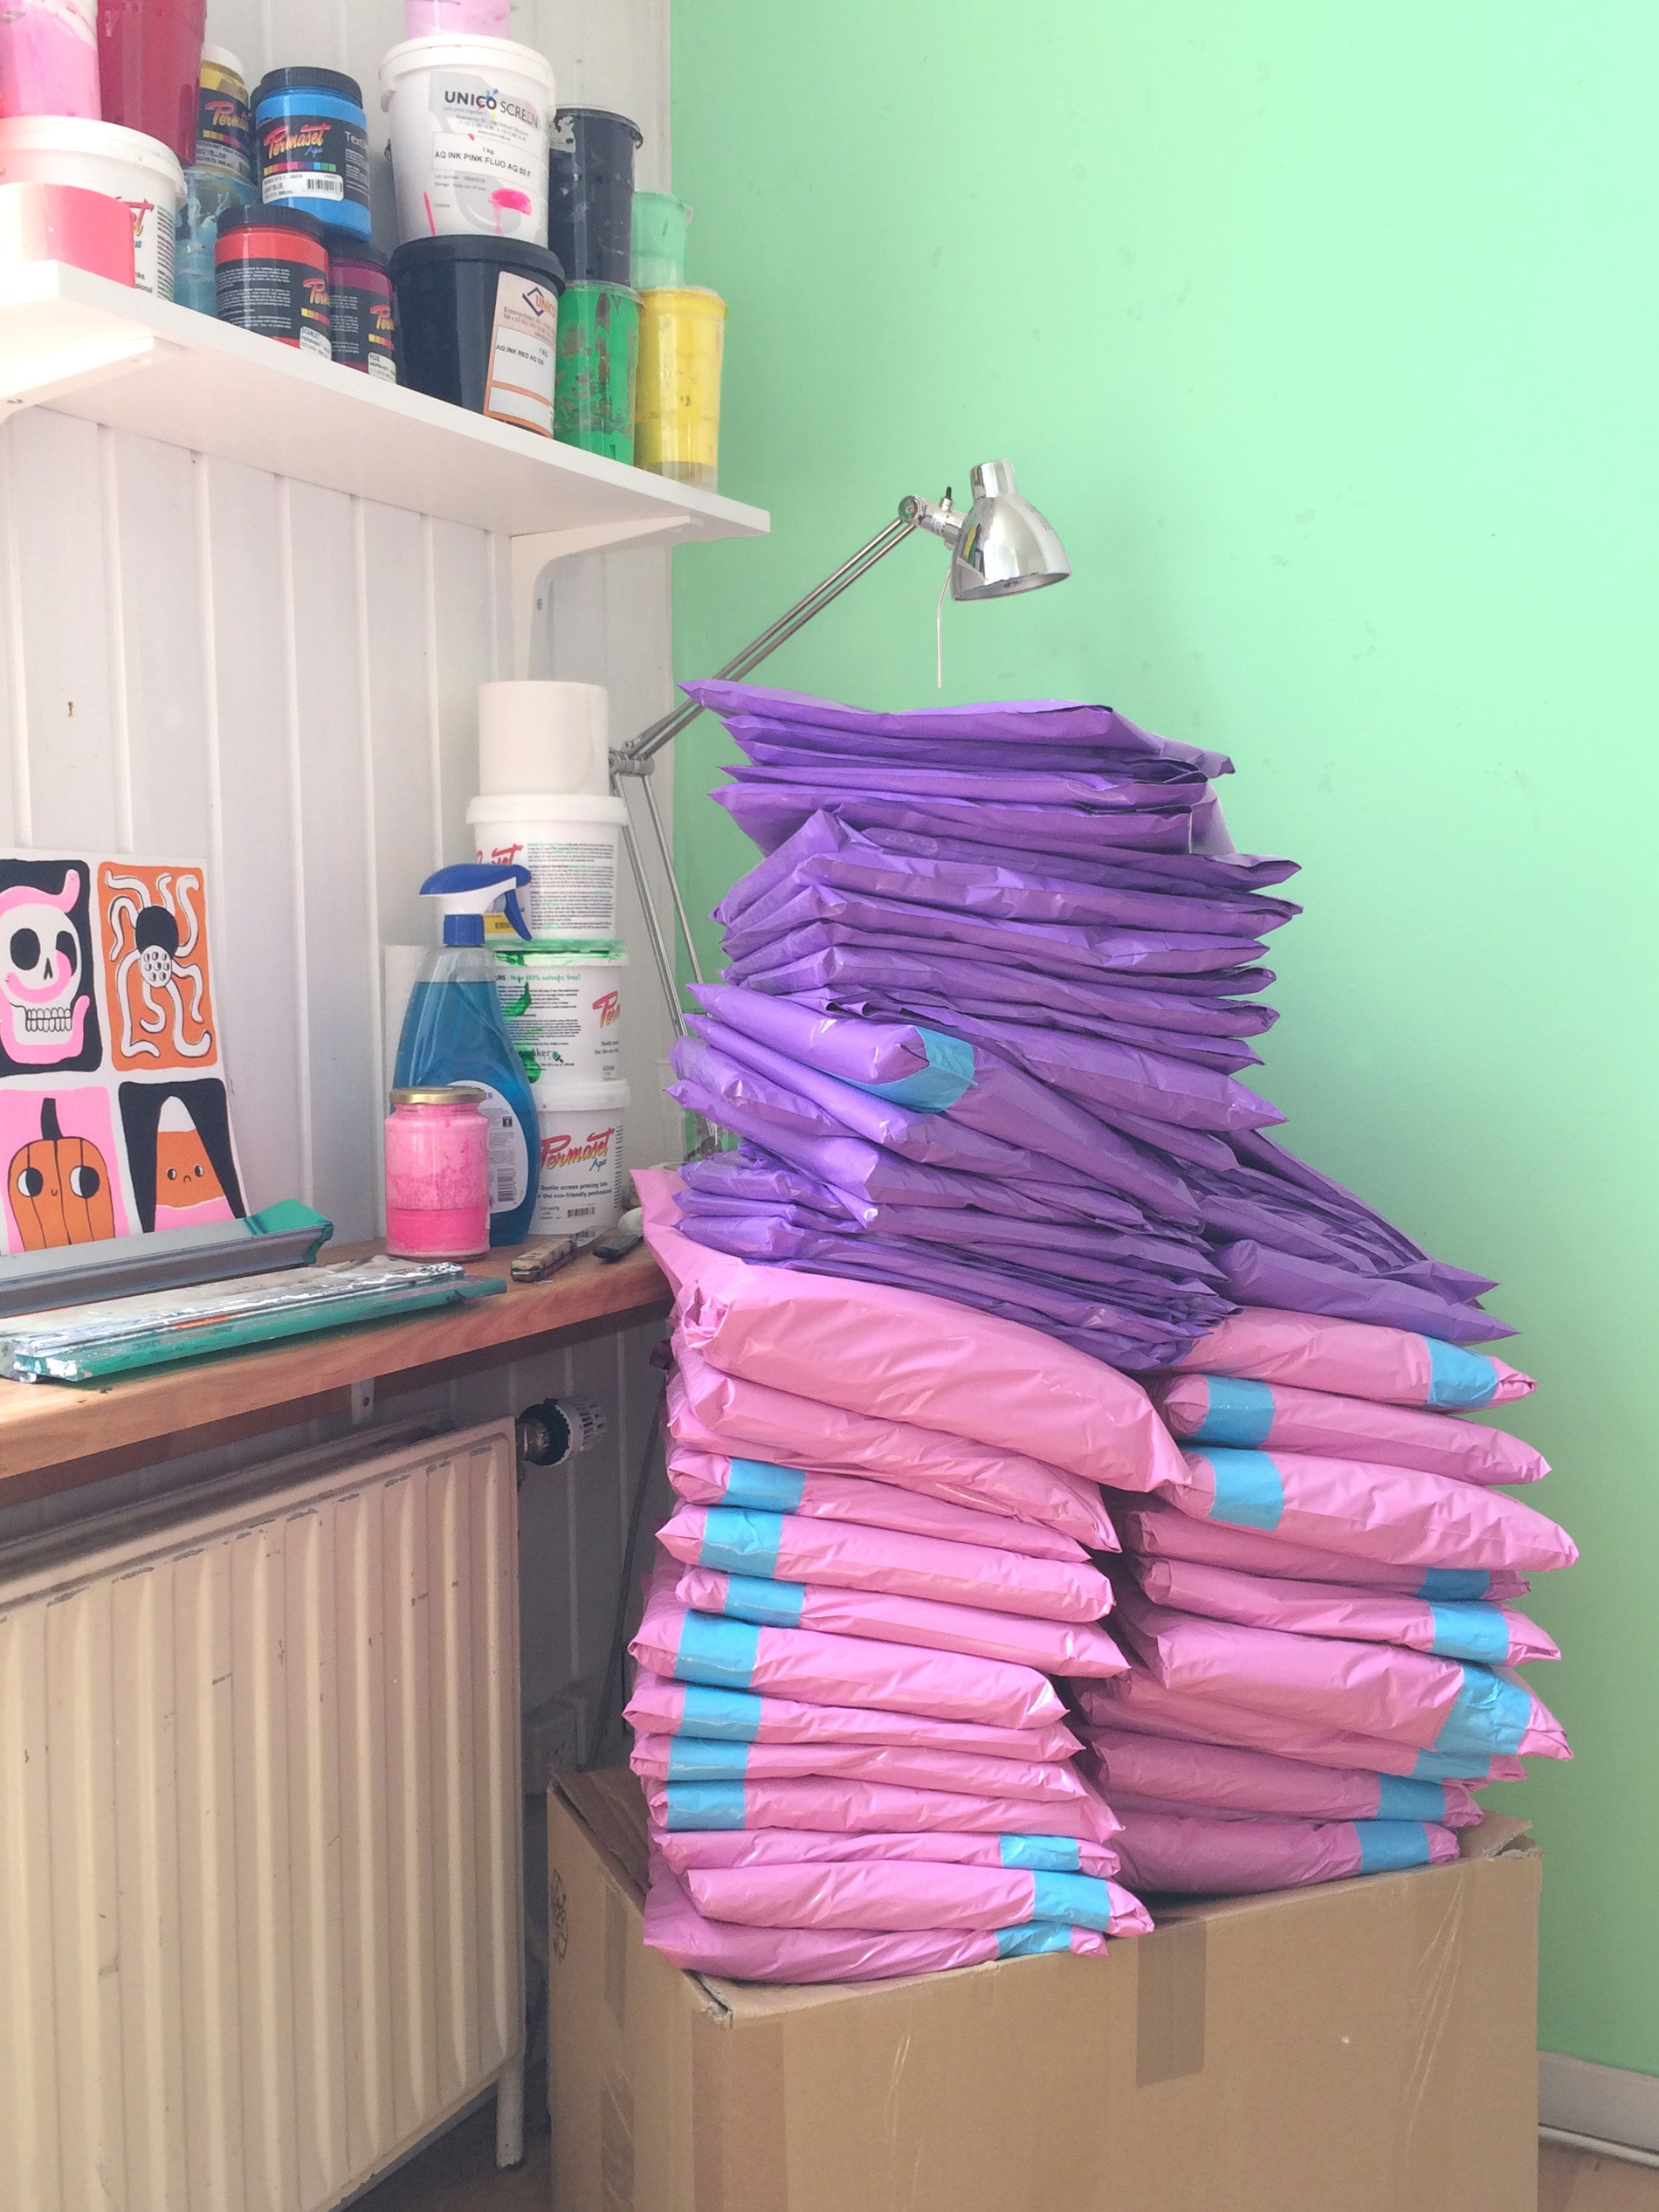 Pile of pink and purple mailer bags on desk